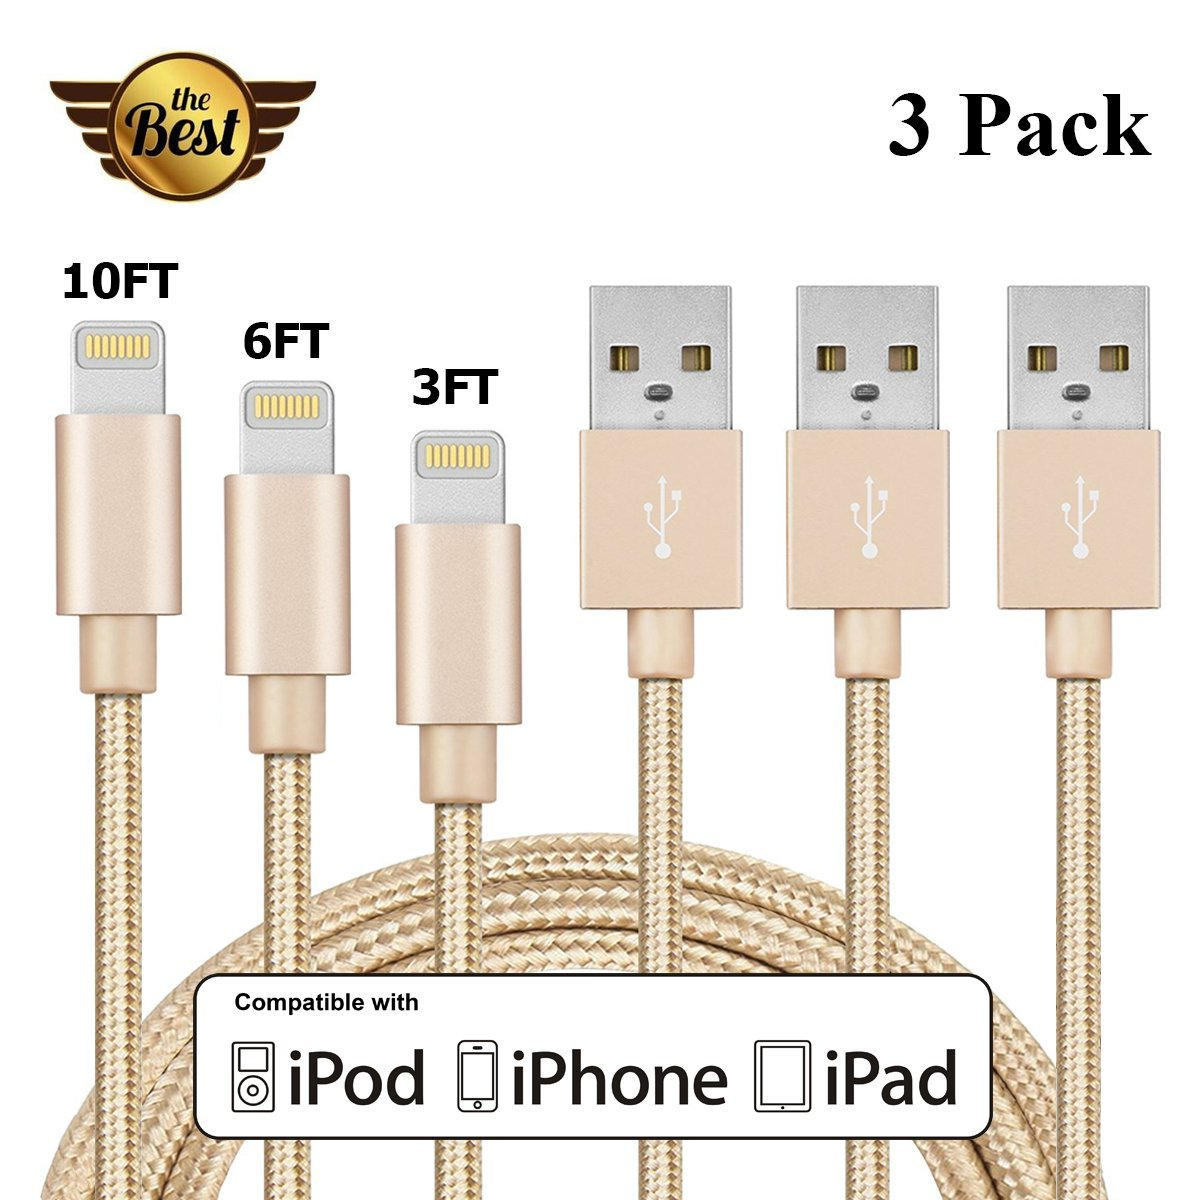 Apple Lightning Cable, [3 Pack] Qiwooode iPhone Cable 3FT 6FT 10FT Nylon Braided 8 Pin Cord Lightning to USB Charging Cable for iPhone 7/7 Plus/6S/6S Plus,SE/5S/5,iPad,iPod (Gold)